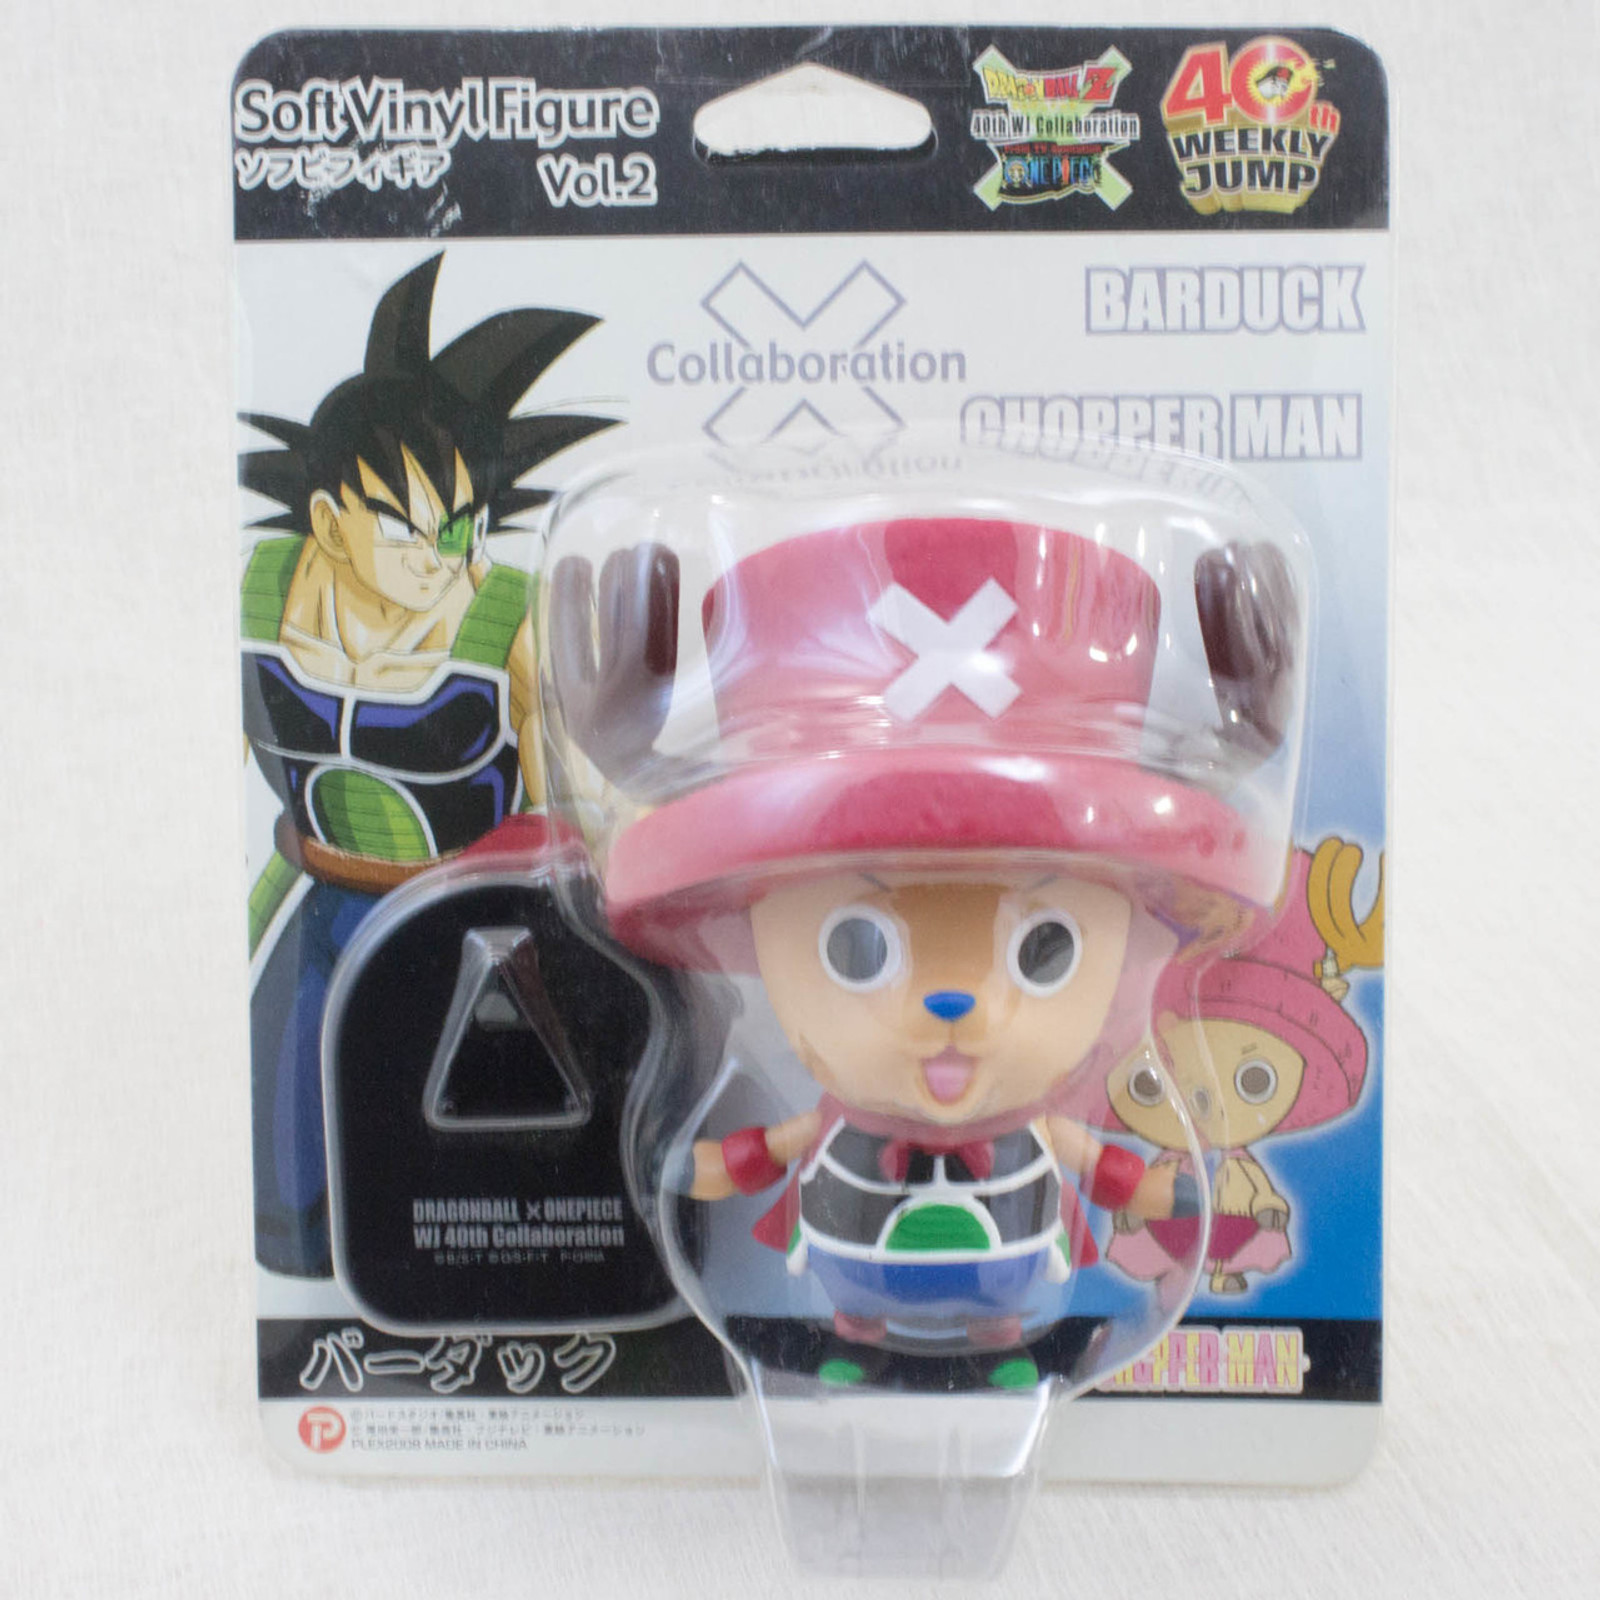 Dragon Ball Z x ONE PIECE Chopper Man x Bardock Sofubi Figure JAPAN ANIME